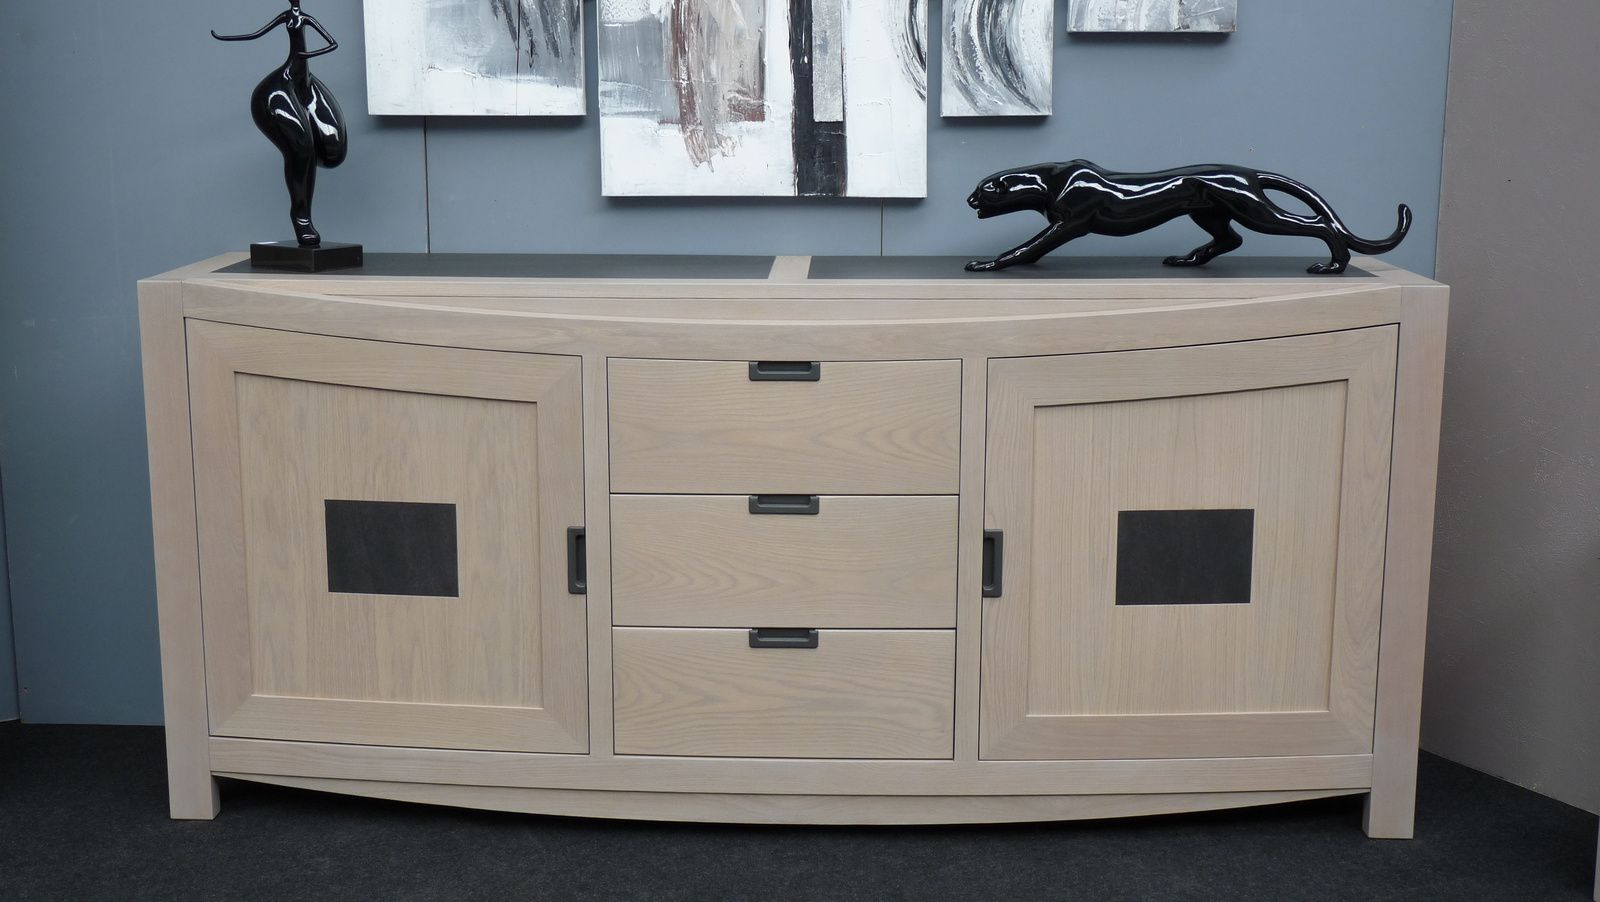 salle manger contemporaine en ch ne blanchi et c ramique. Black Bedroom Furniture Sets. Home Design Ideas